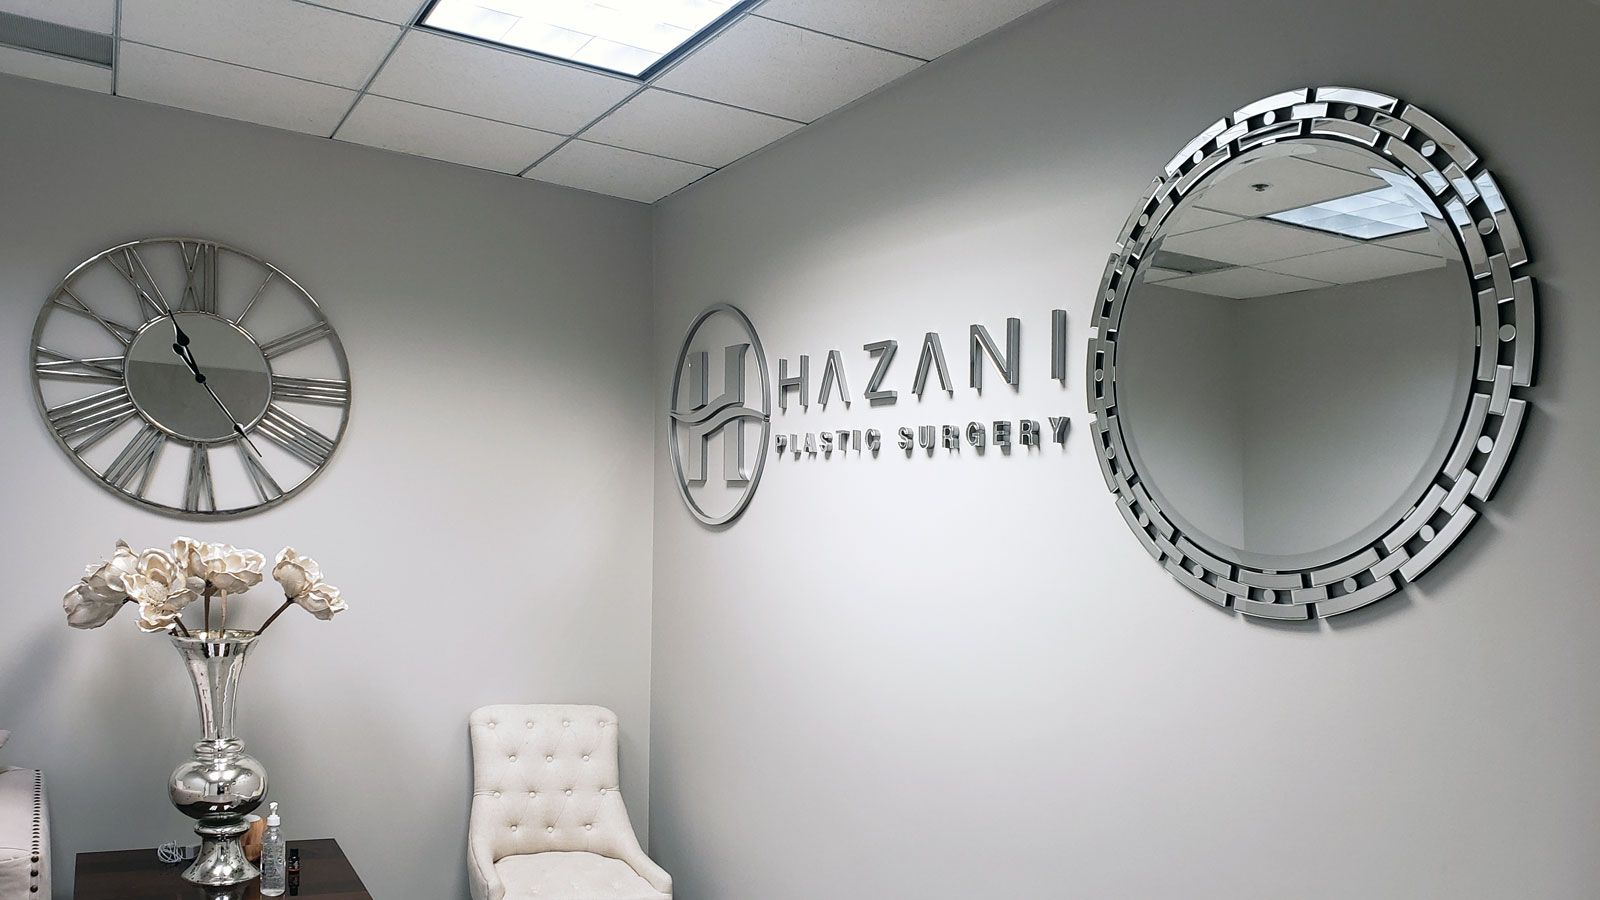 Hazani mirror acrylic signs